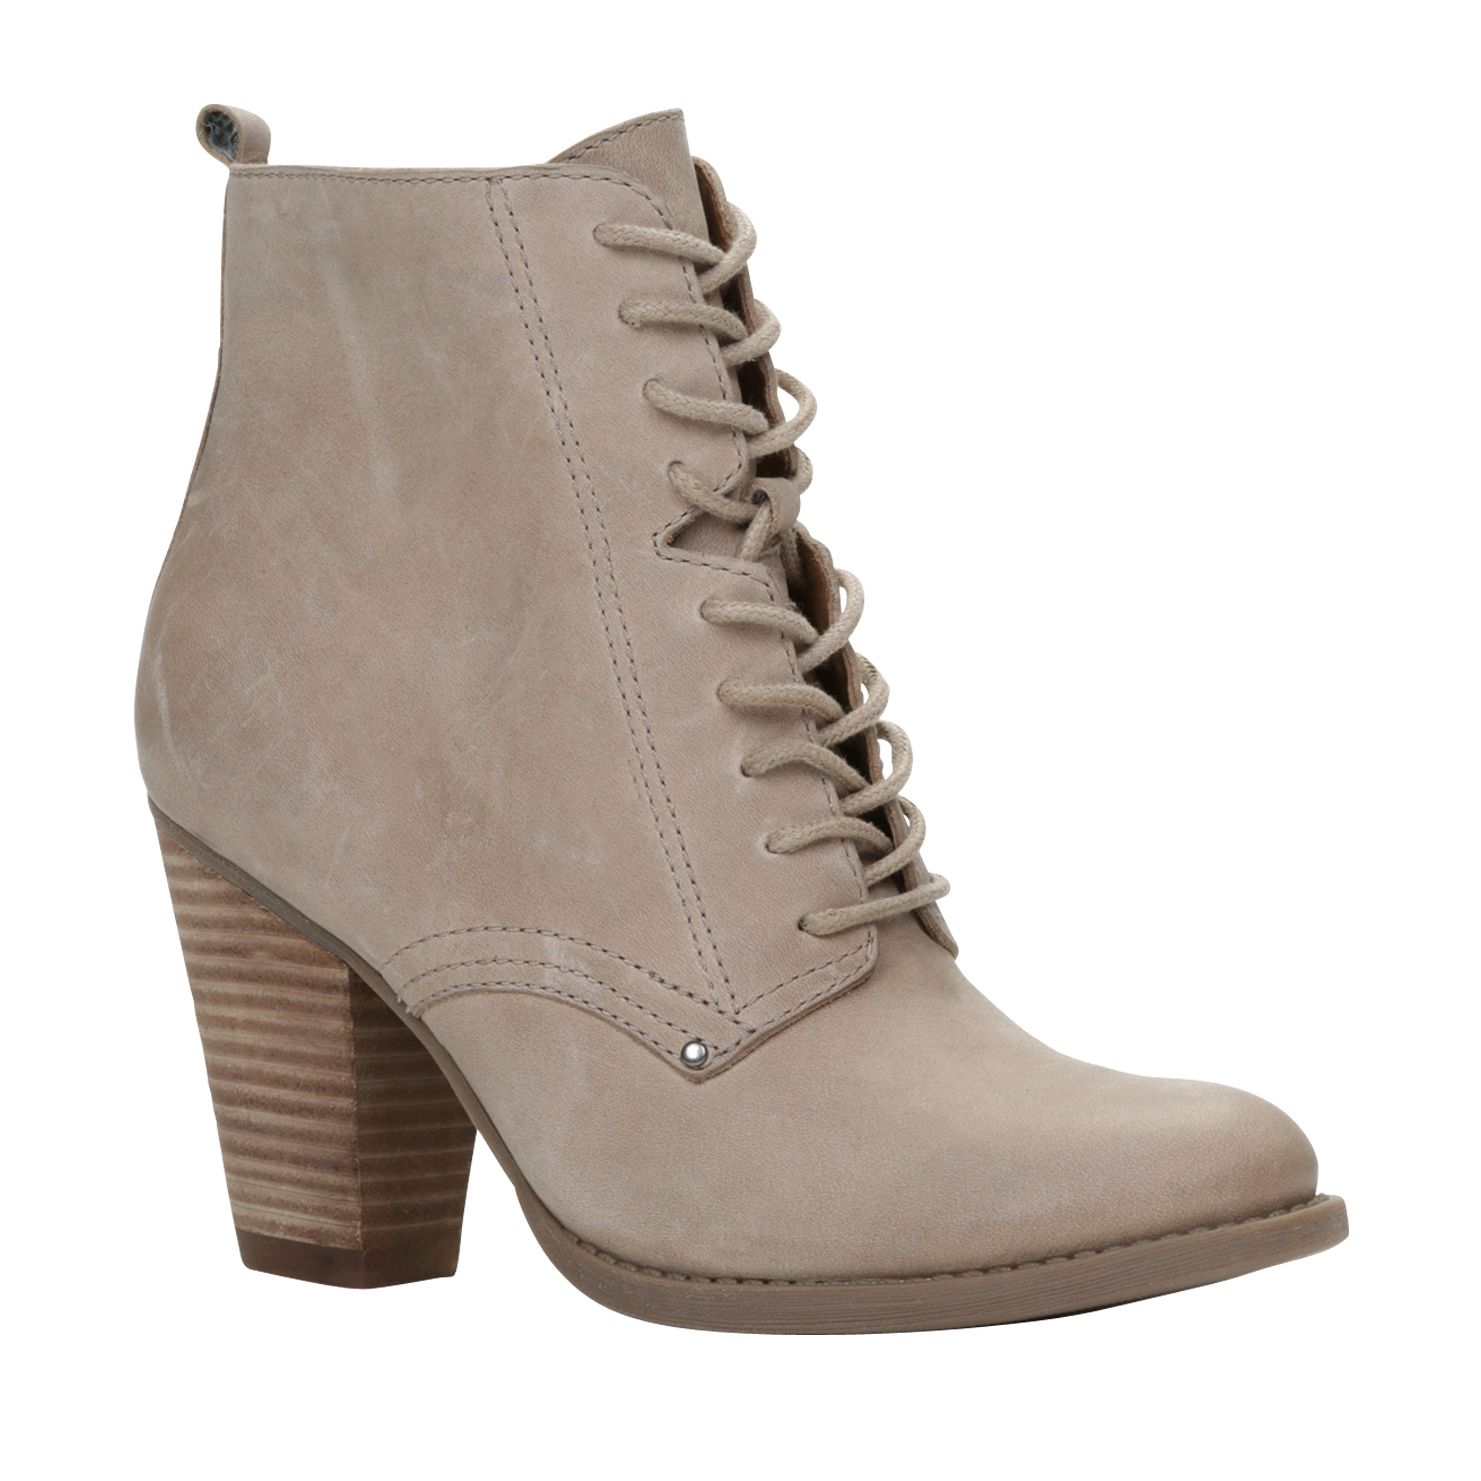 Minuk almond toe lace up block heel boot